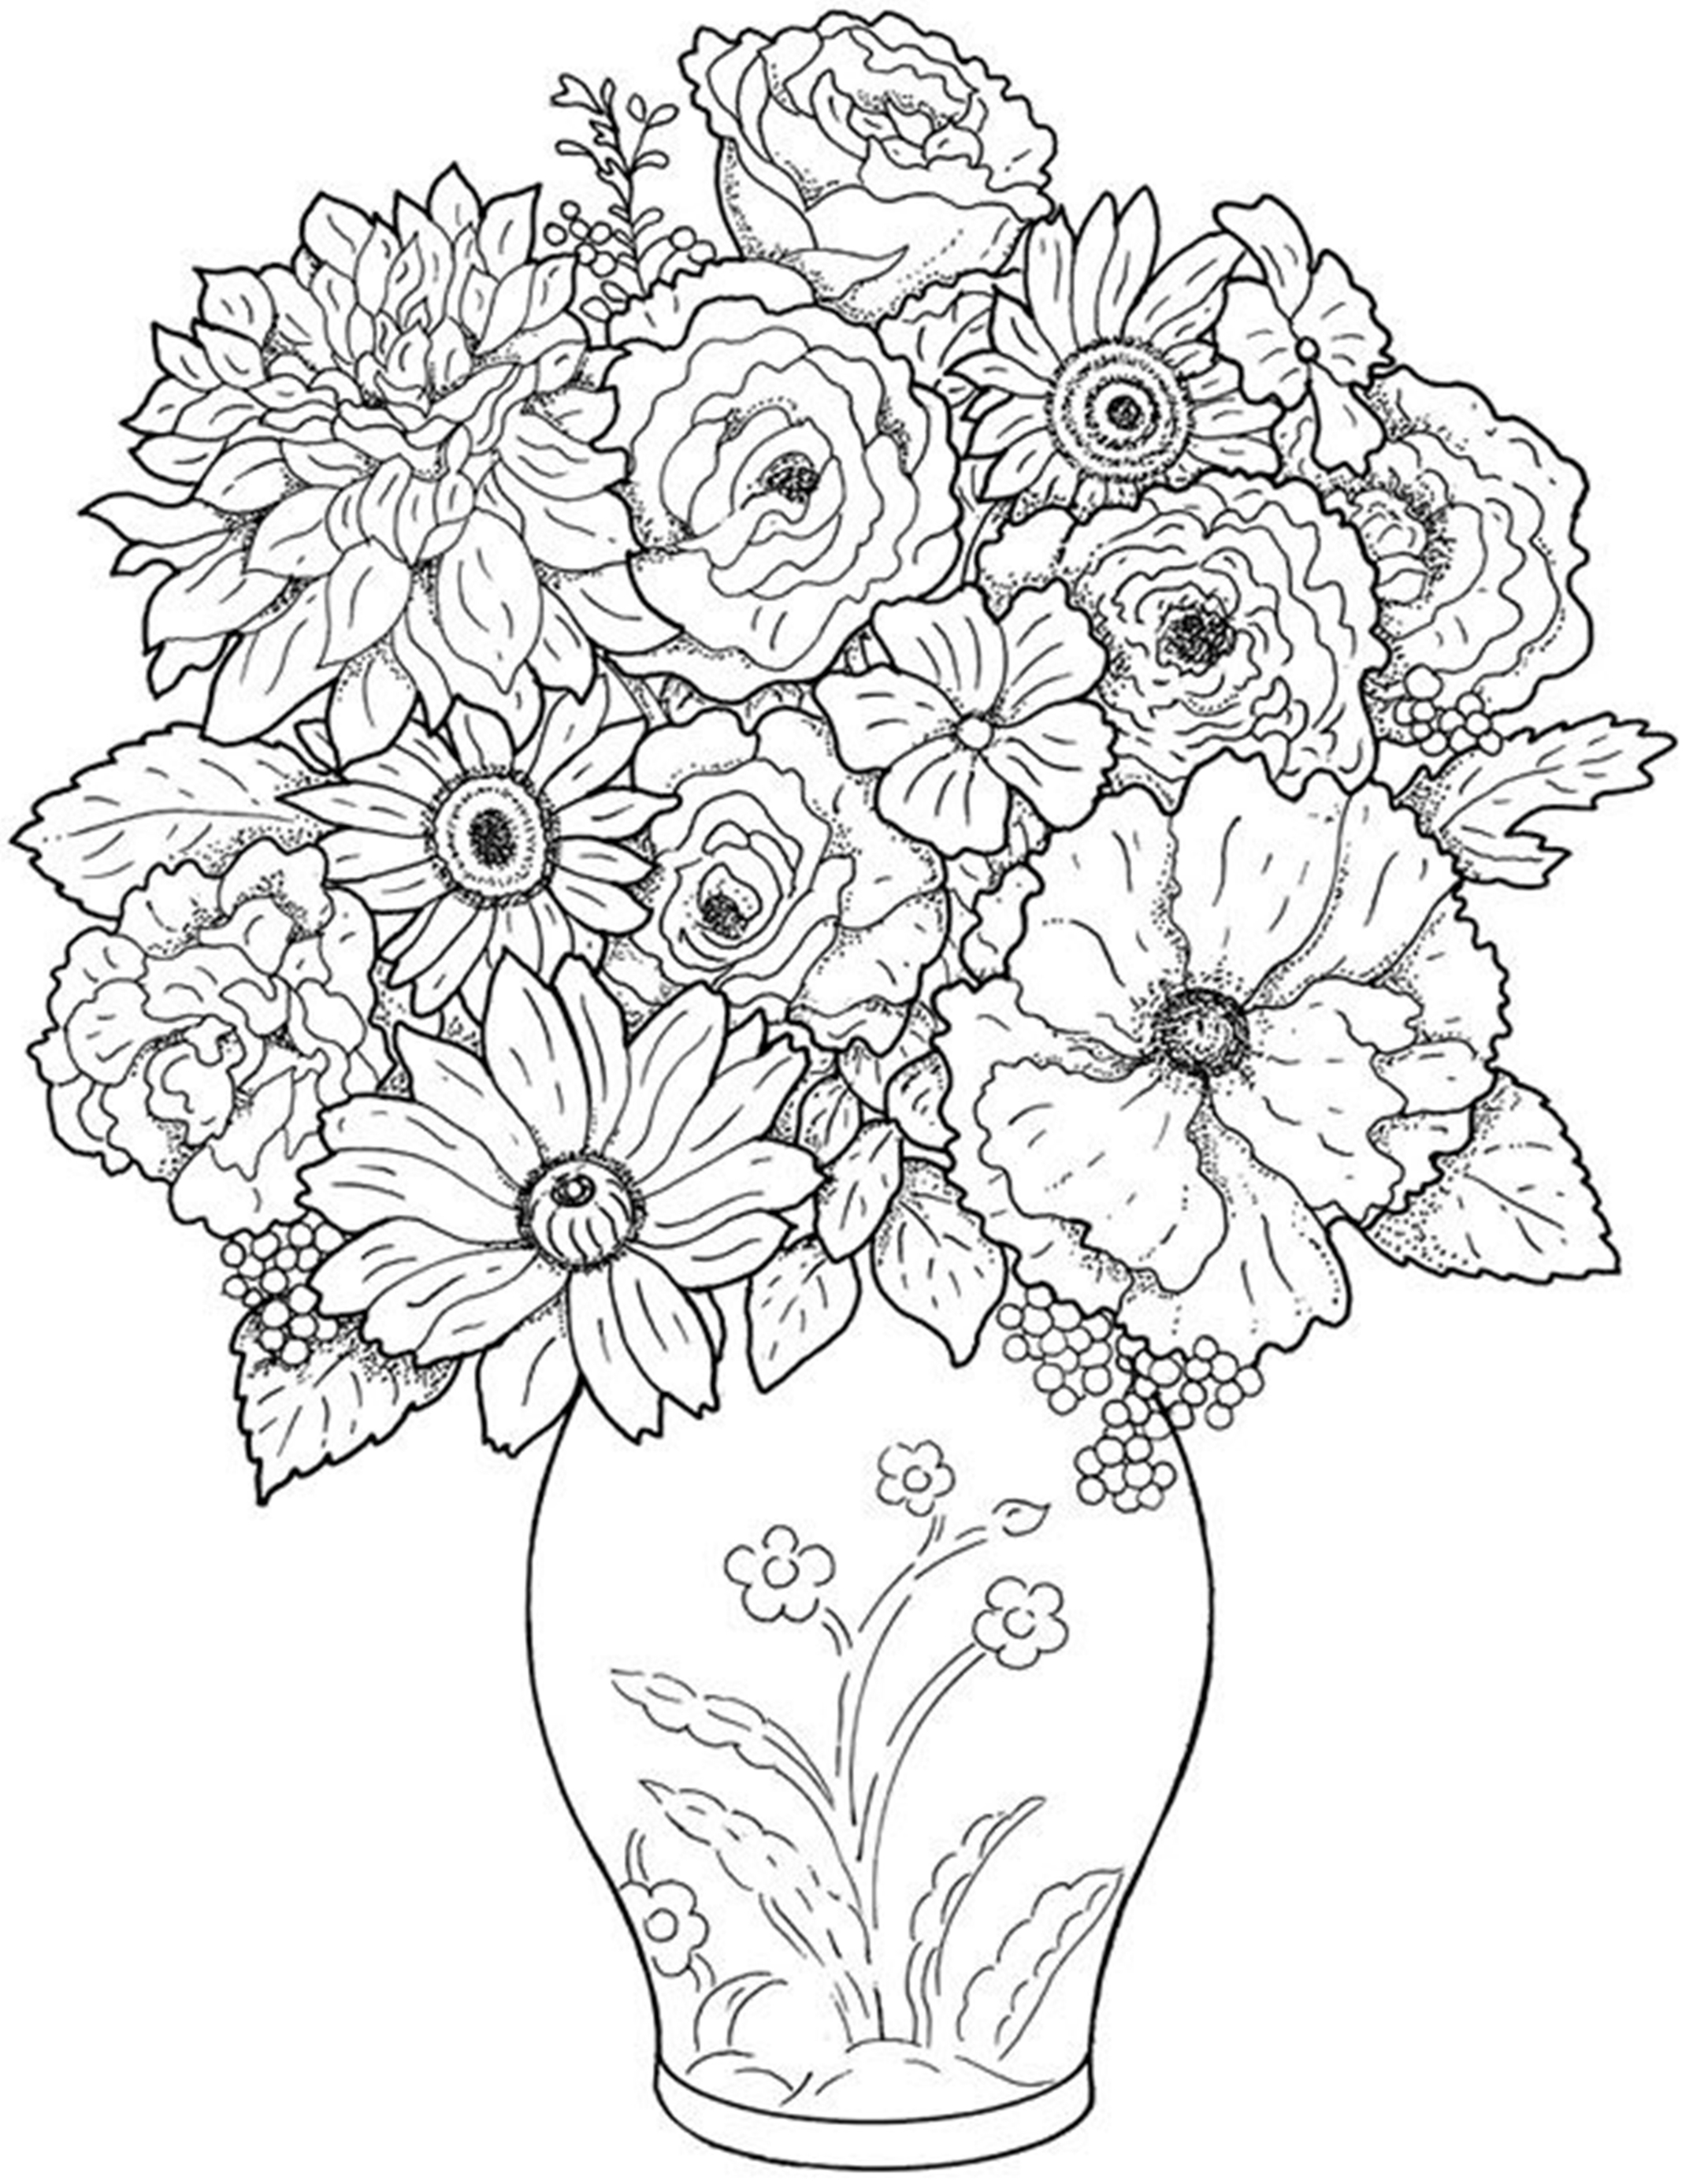 coloring flower free printable flower coloring pages for kids best coloring flower